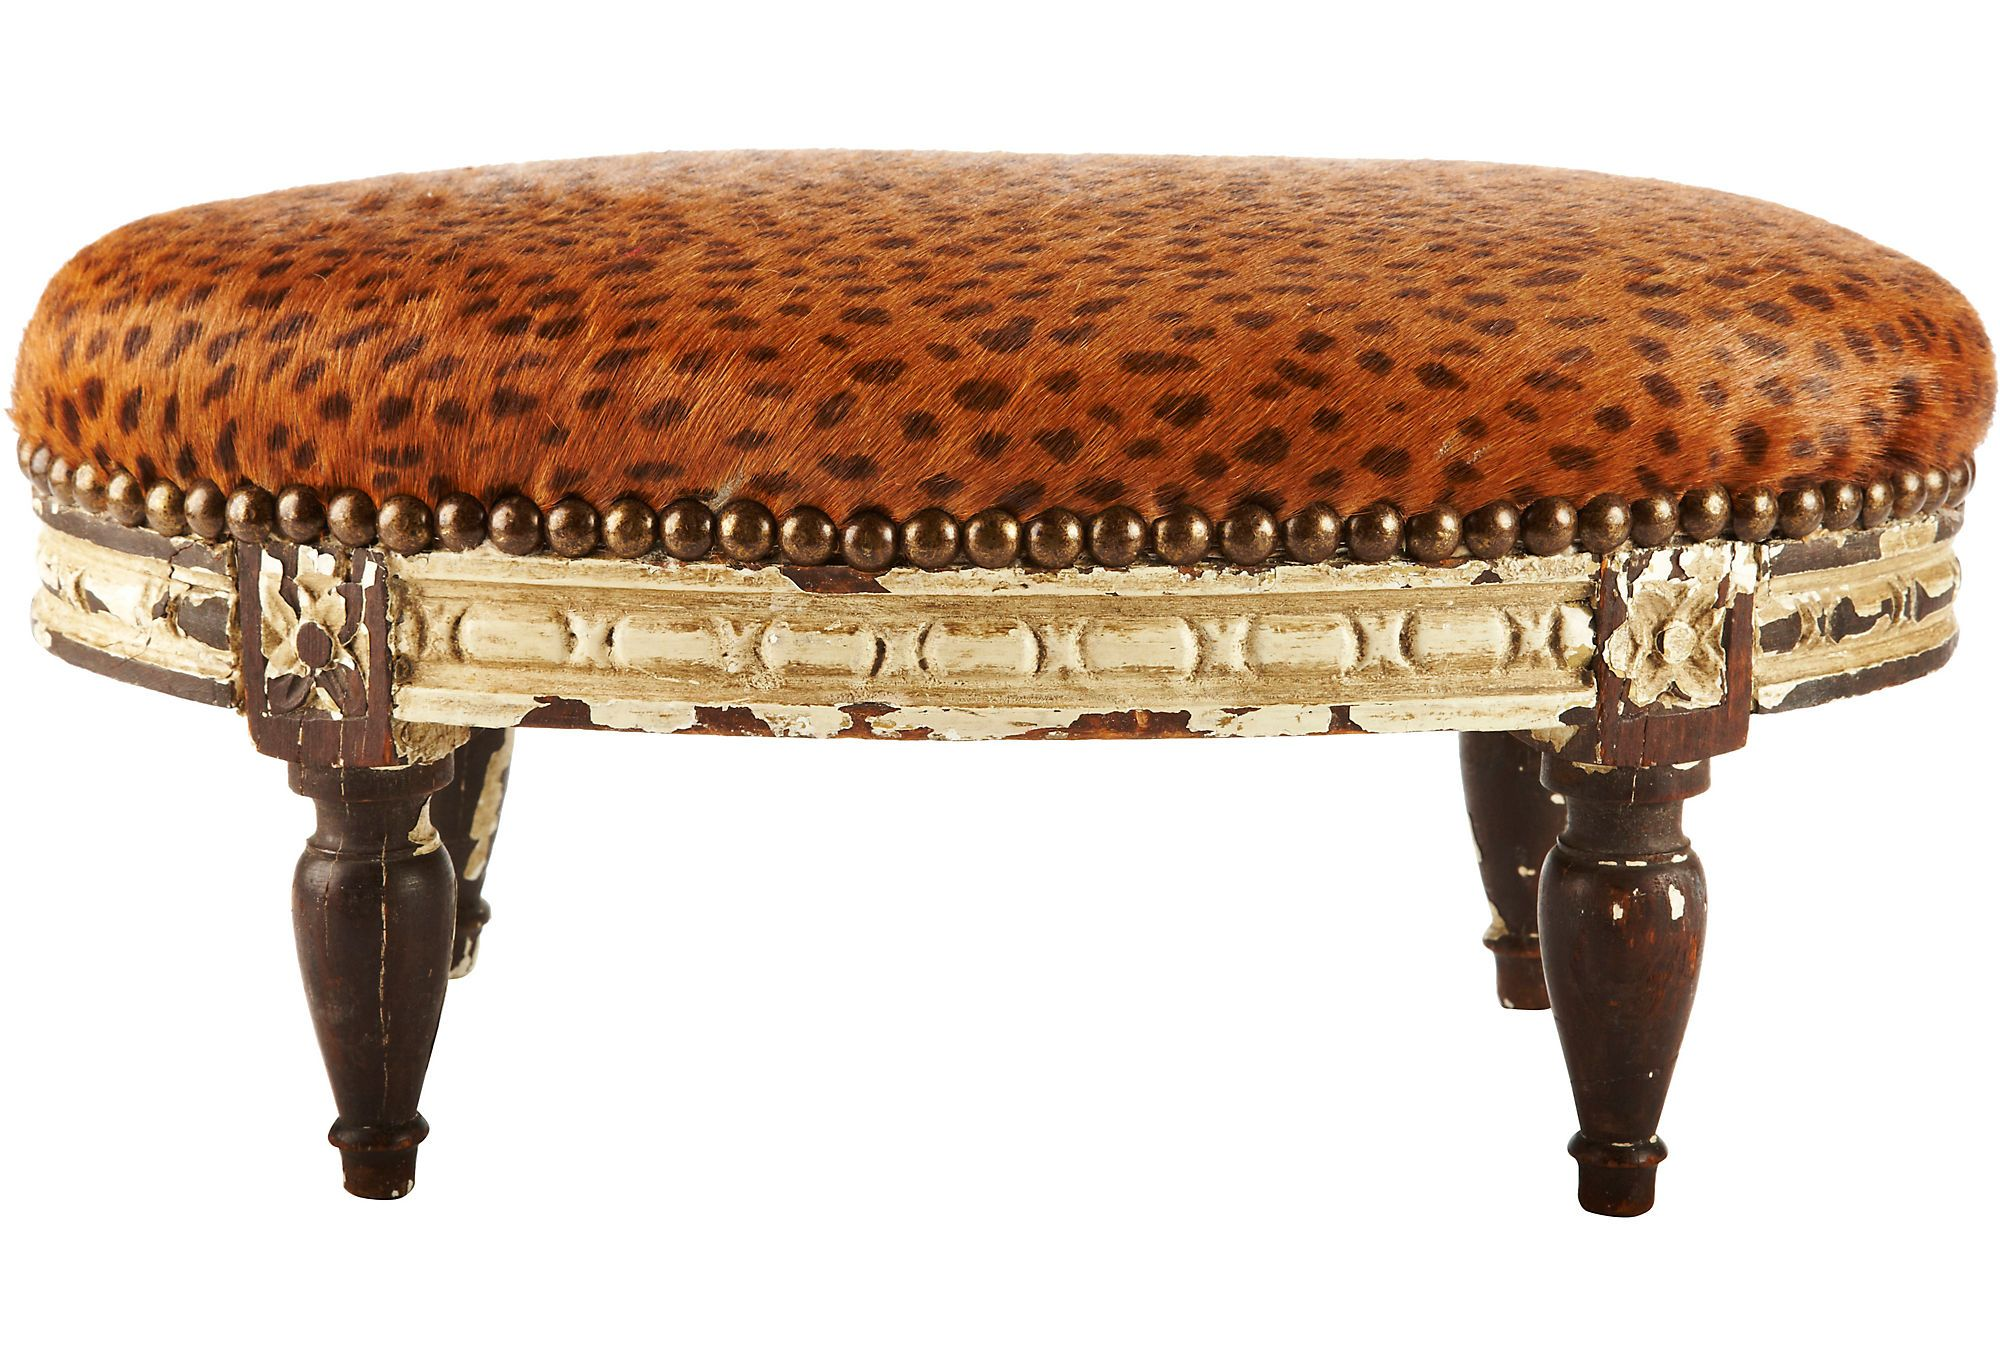 Antique French footstool with stenciled leopard cowhide.